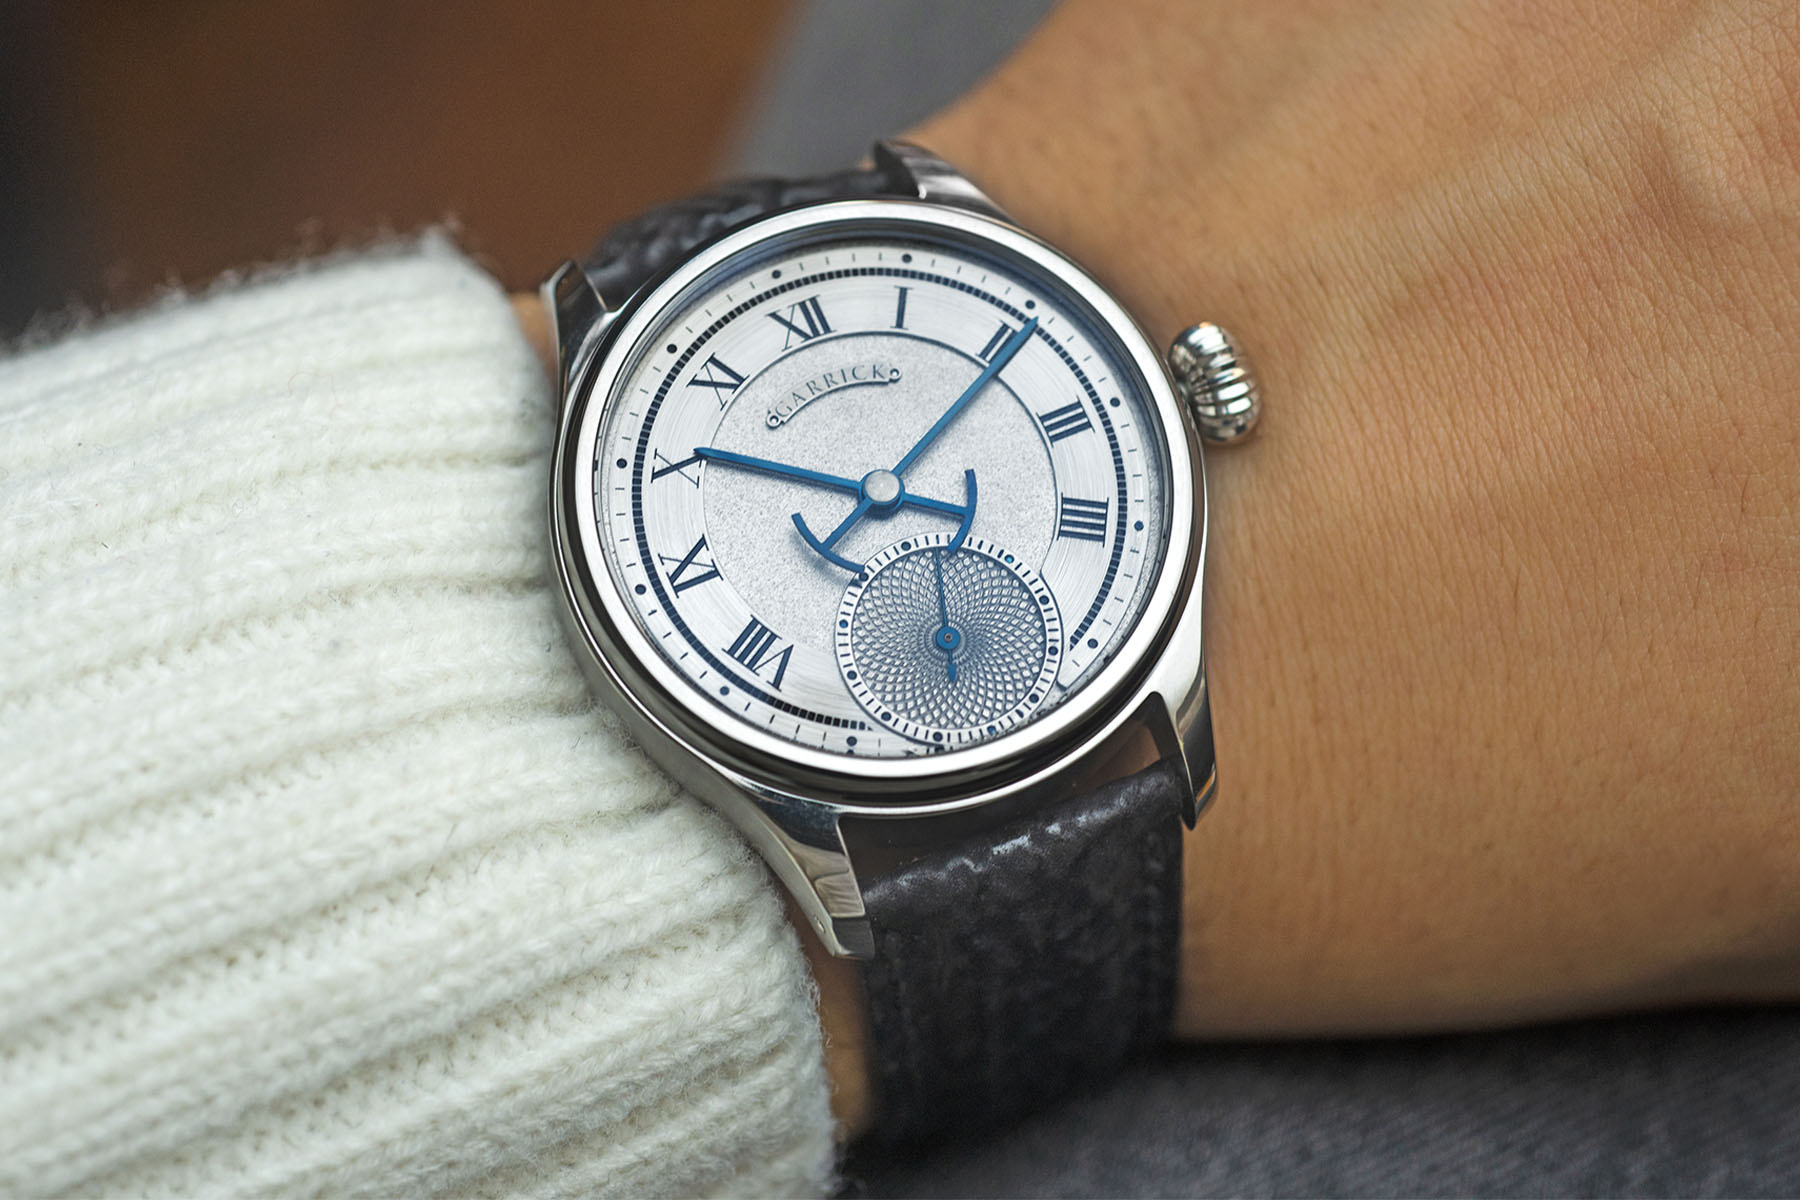 Independent Watchmaking - Introducing the New Garrick S4